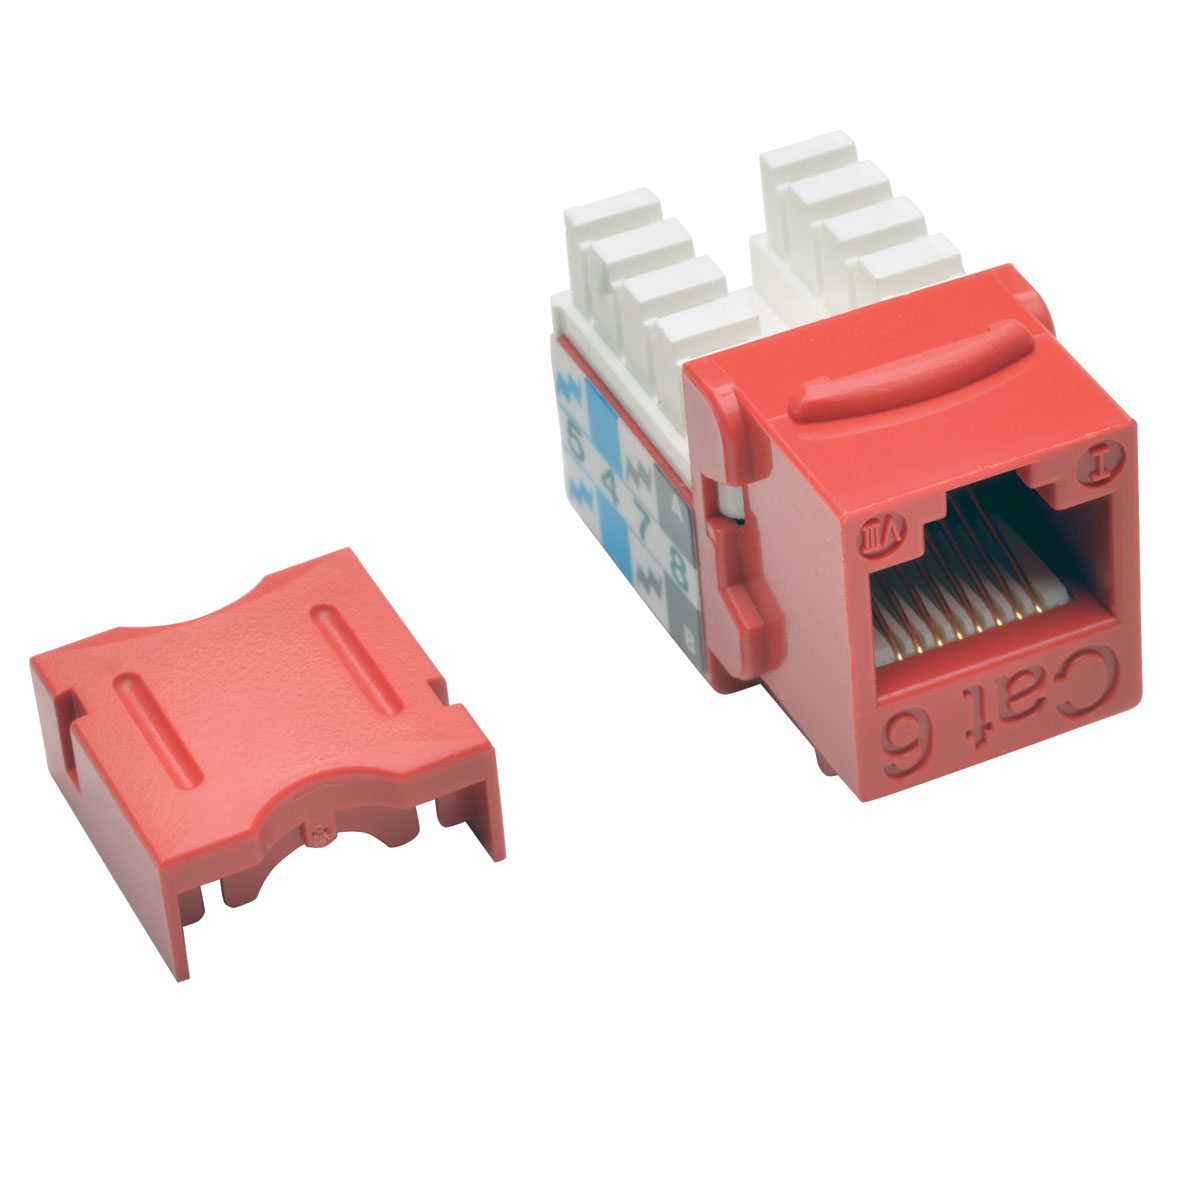 Cat6/Cat5e 110 Punch Down Keystone Jack - Modular insert - RJ-45 - red